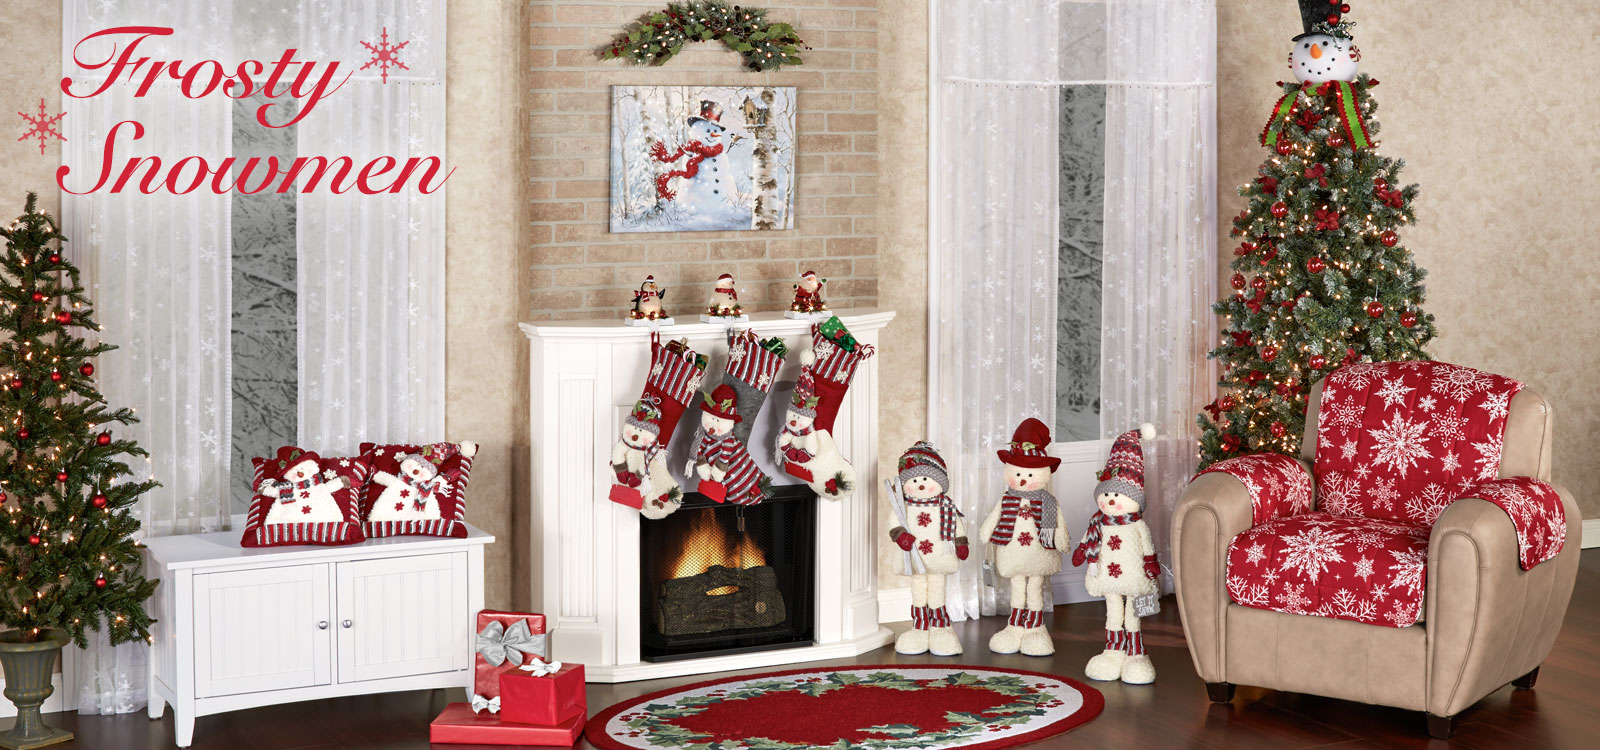 Frosty Snowmen Holiday Collection